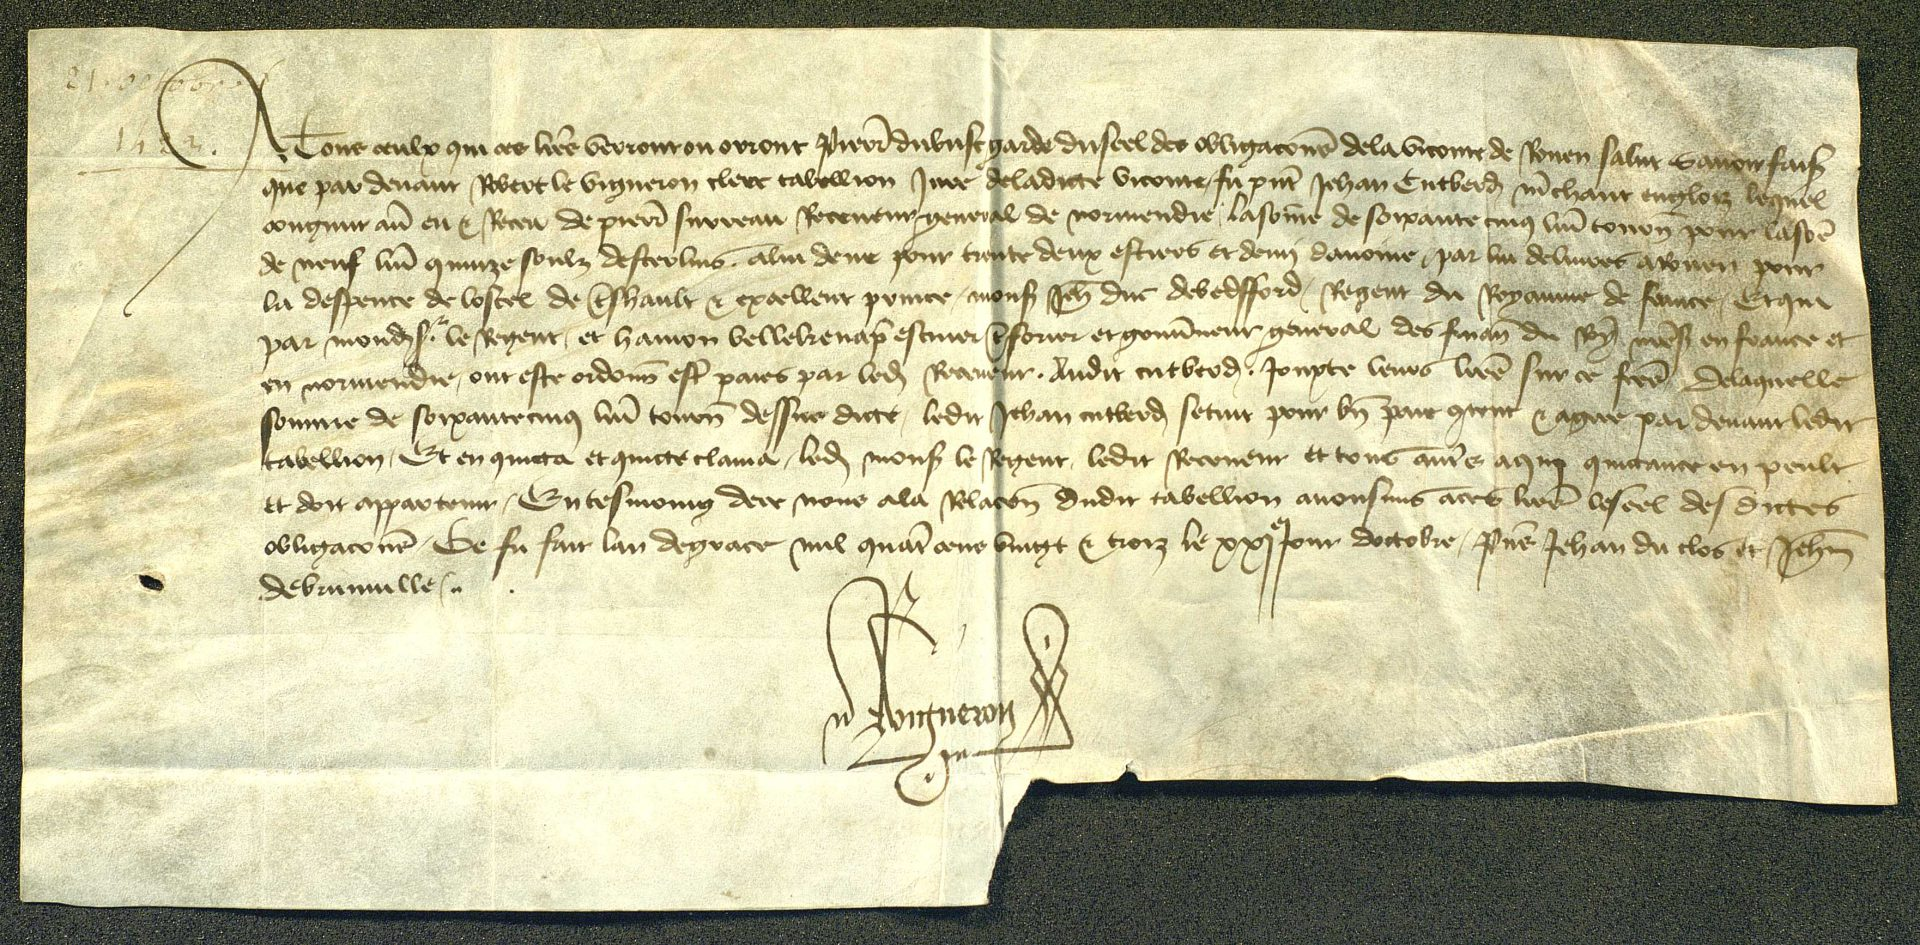 Receipt made out to John Cutberd, English merchant, by Pierre Surreau, Receiver General of Normandy, for a consignment of oats